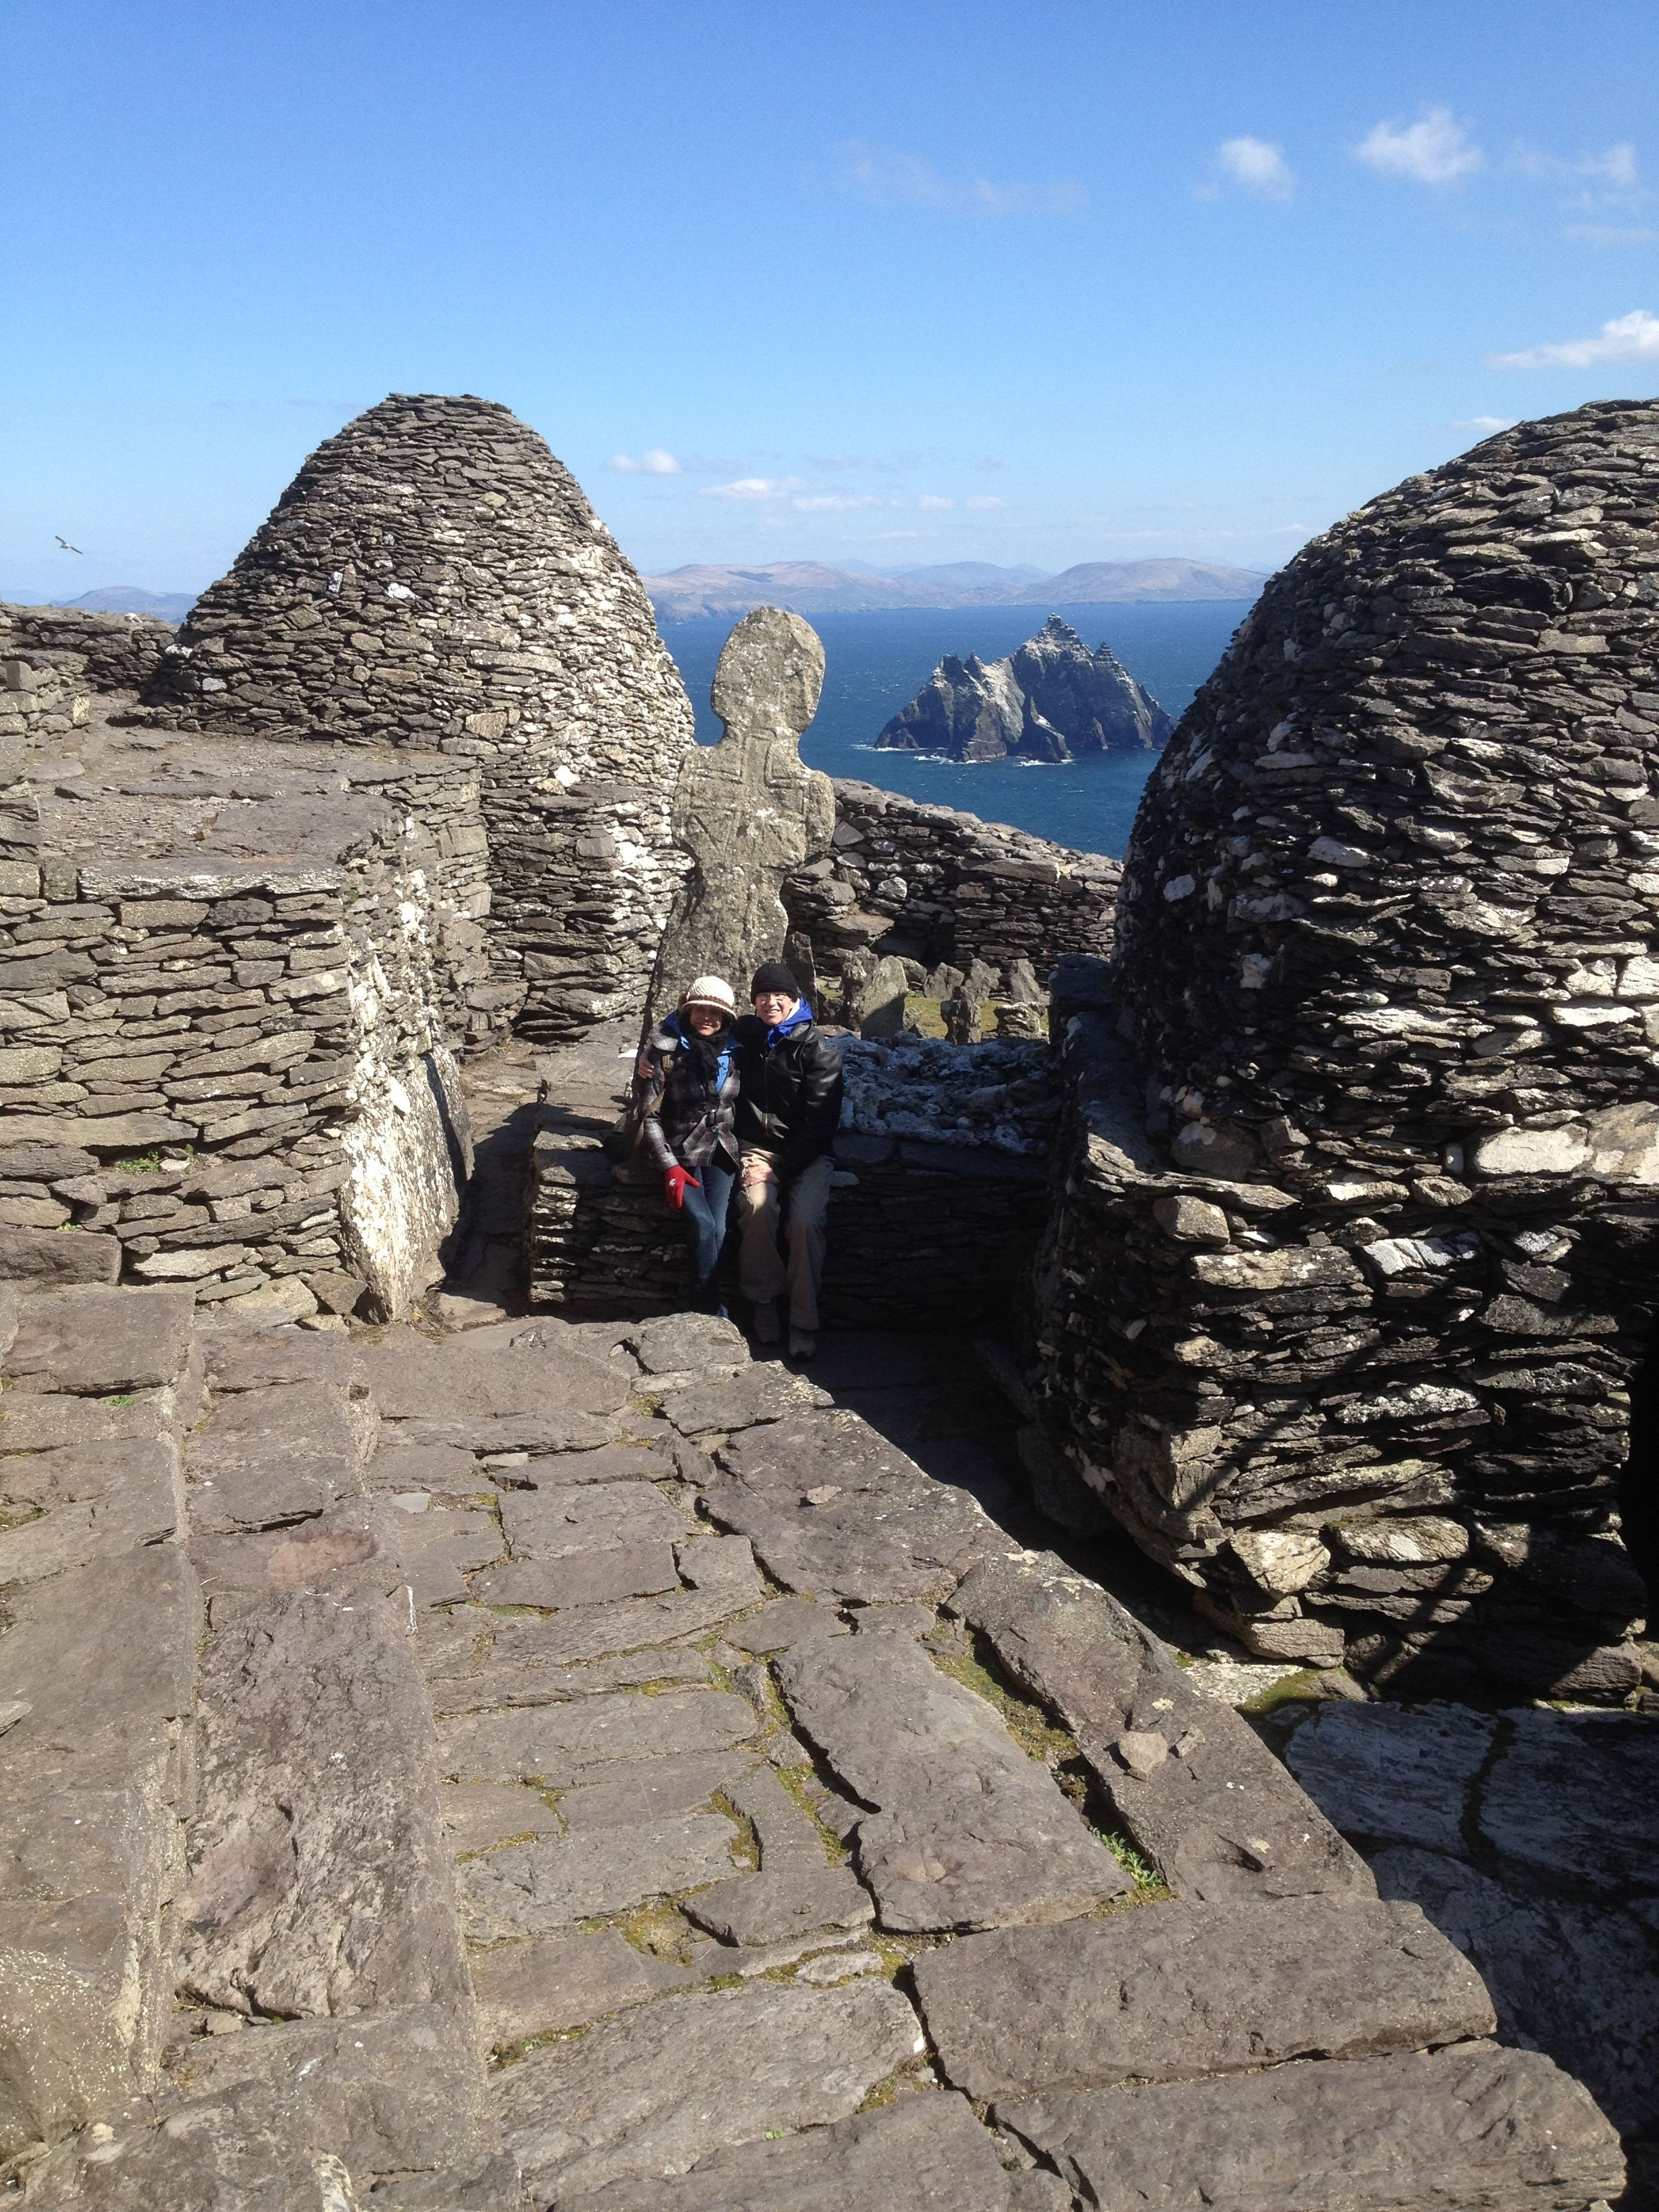 This remote island, Skellig Michael, is a World Heritage site about 6 miles off the coast of Ireland. It held a monastery of 6th century monks. They lived in total isolation in beehive-shaped huts.